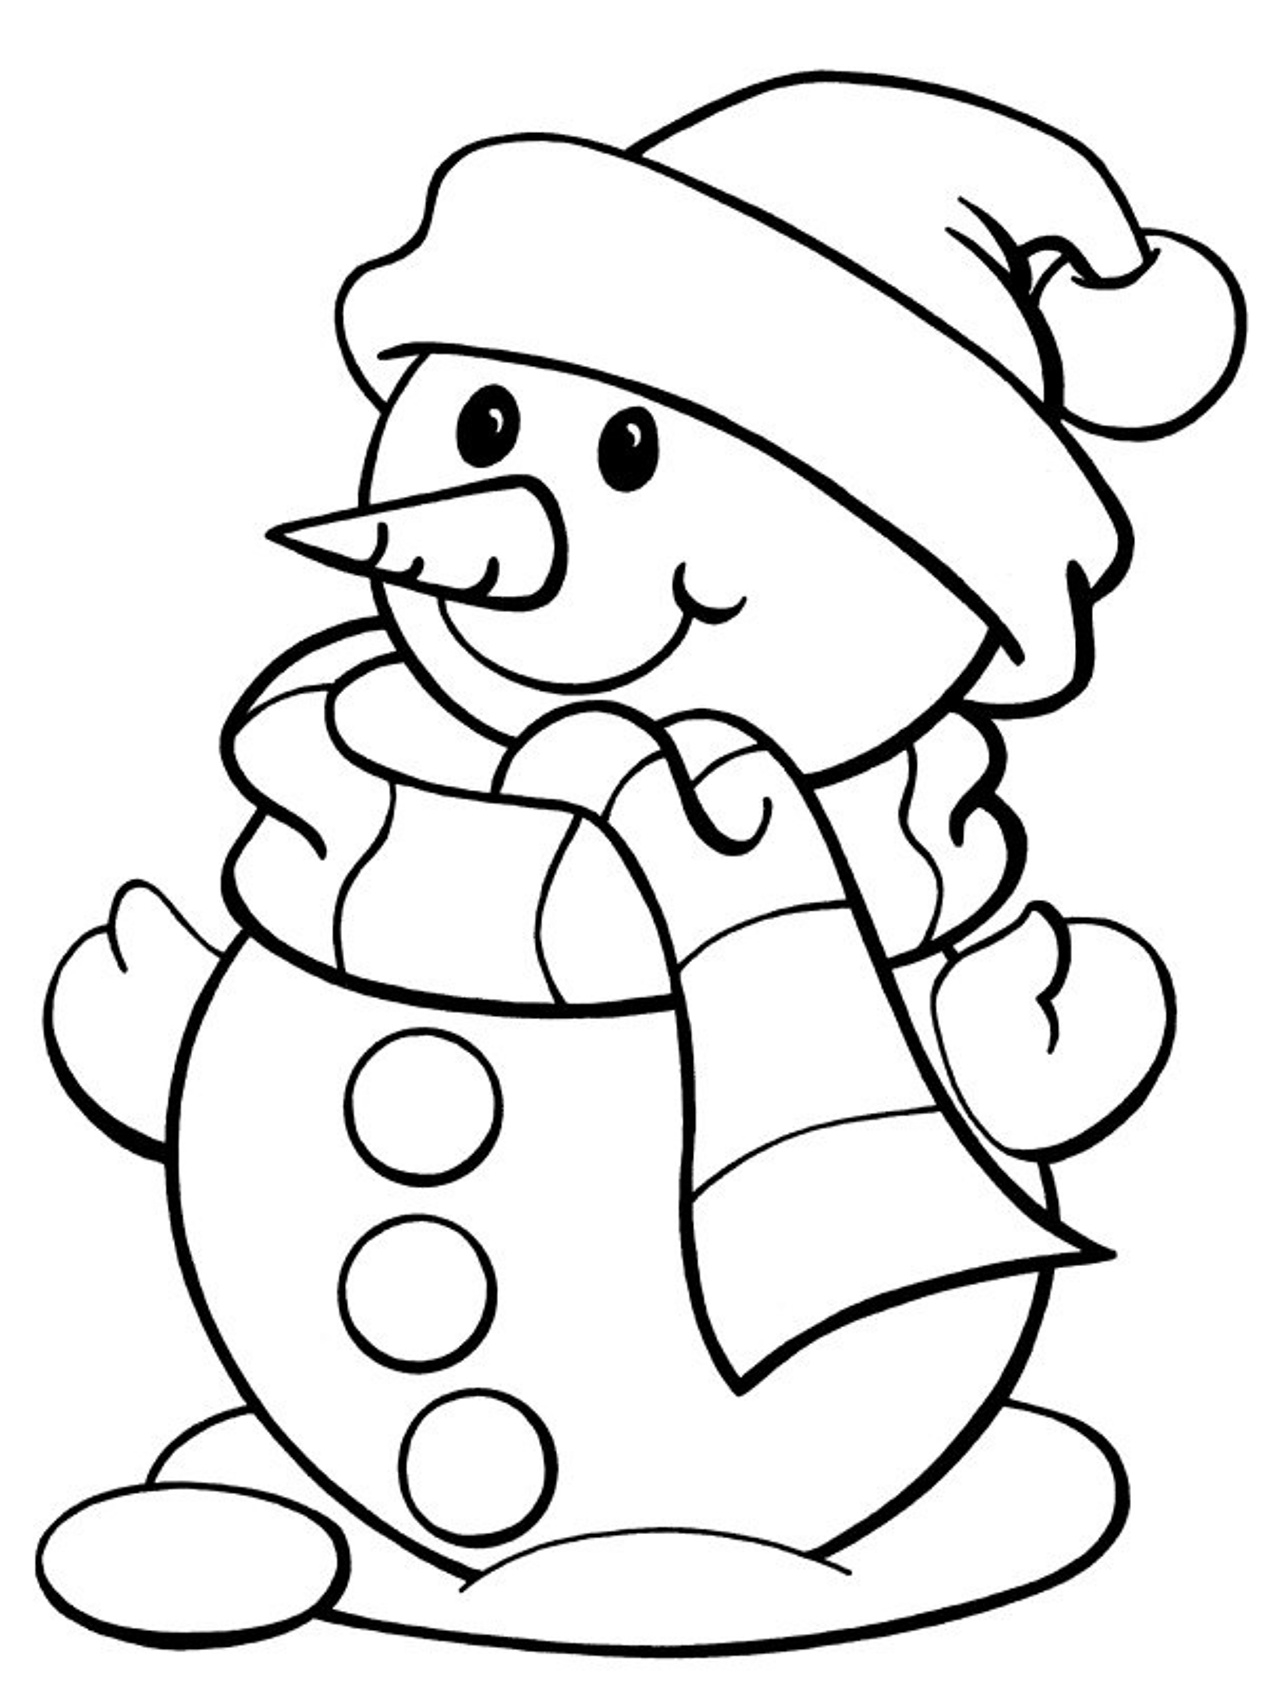 snow coloring pages free winter puzzle coloring pages printable winter themed coloring pages snow free